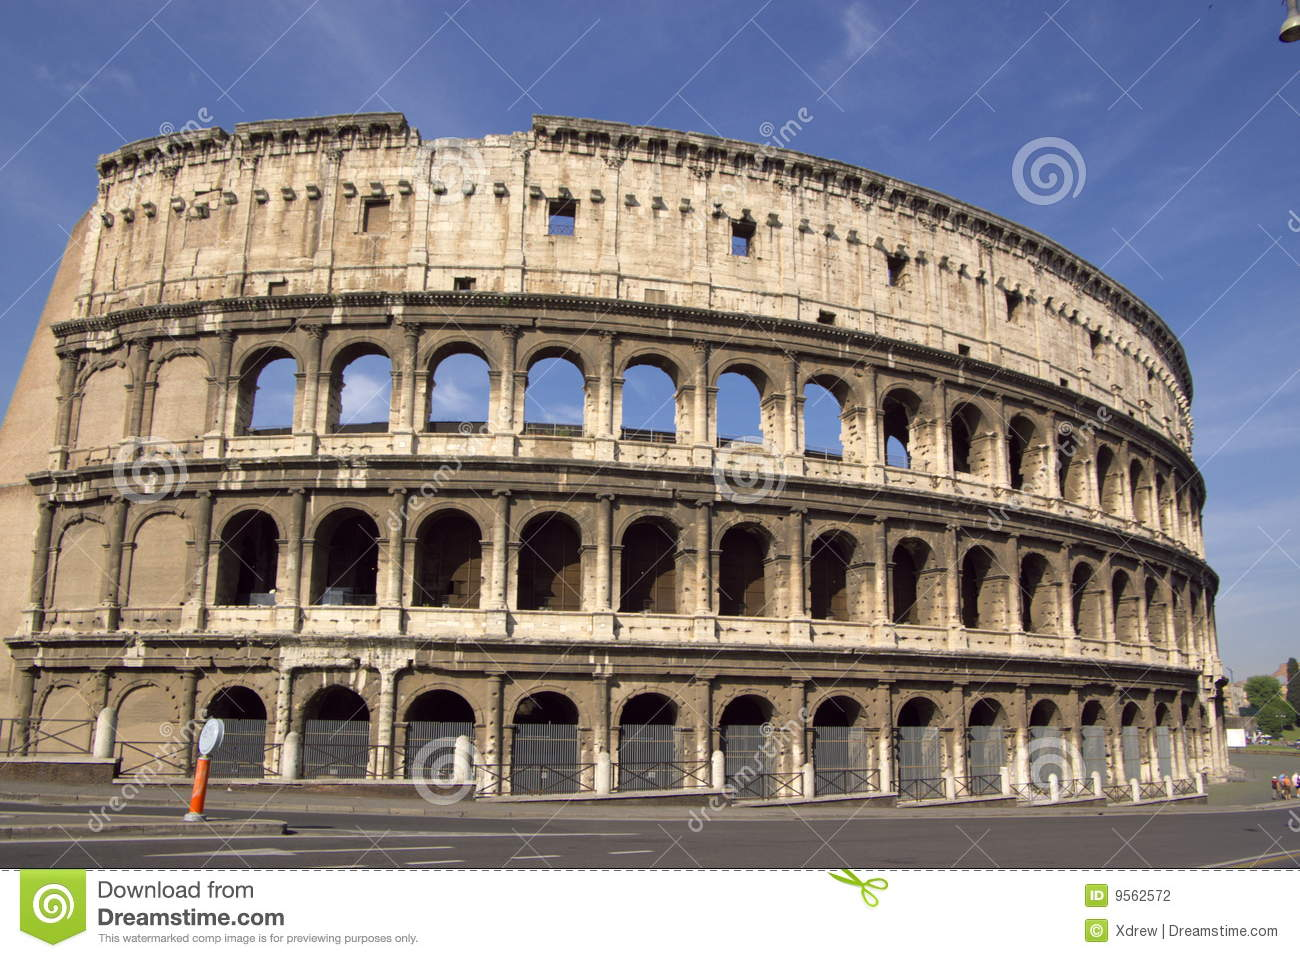 colosseum vs coliseum Colosseum tours & tickets  guide vs no guide any tour of the colosseum will be an incredible and mesmerizing experience a self-guided tour is the cheapest .